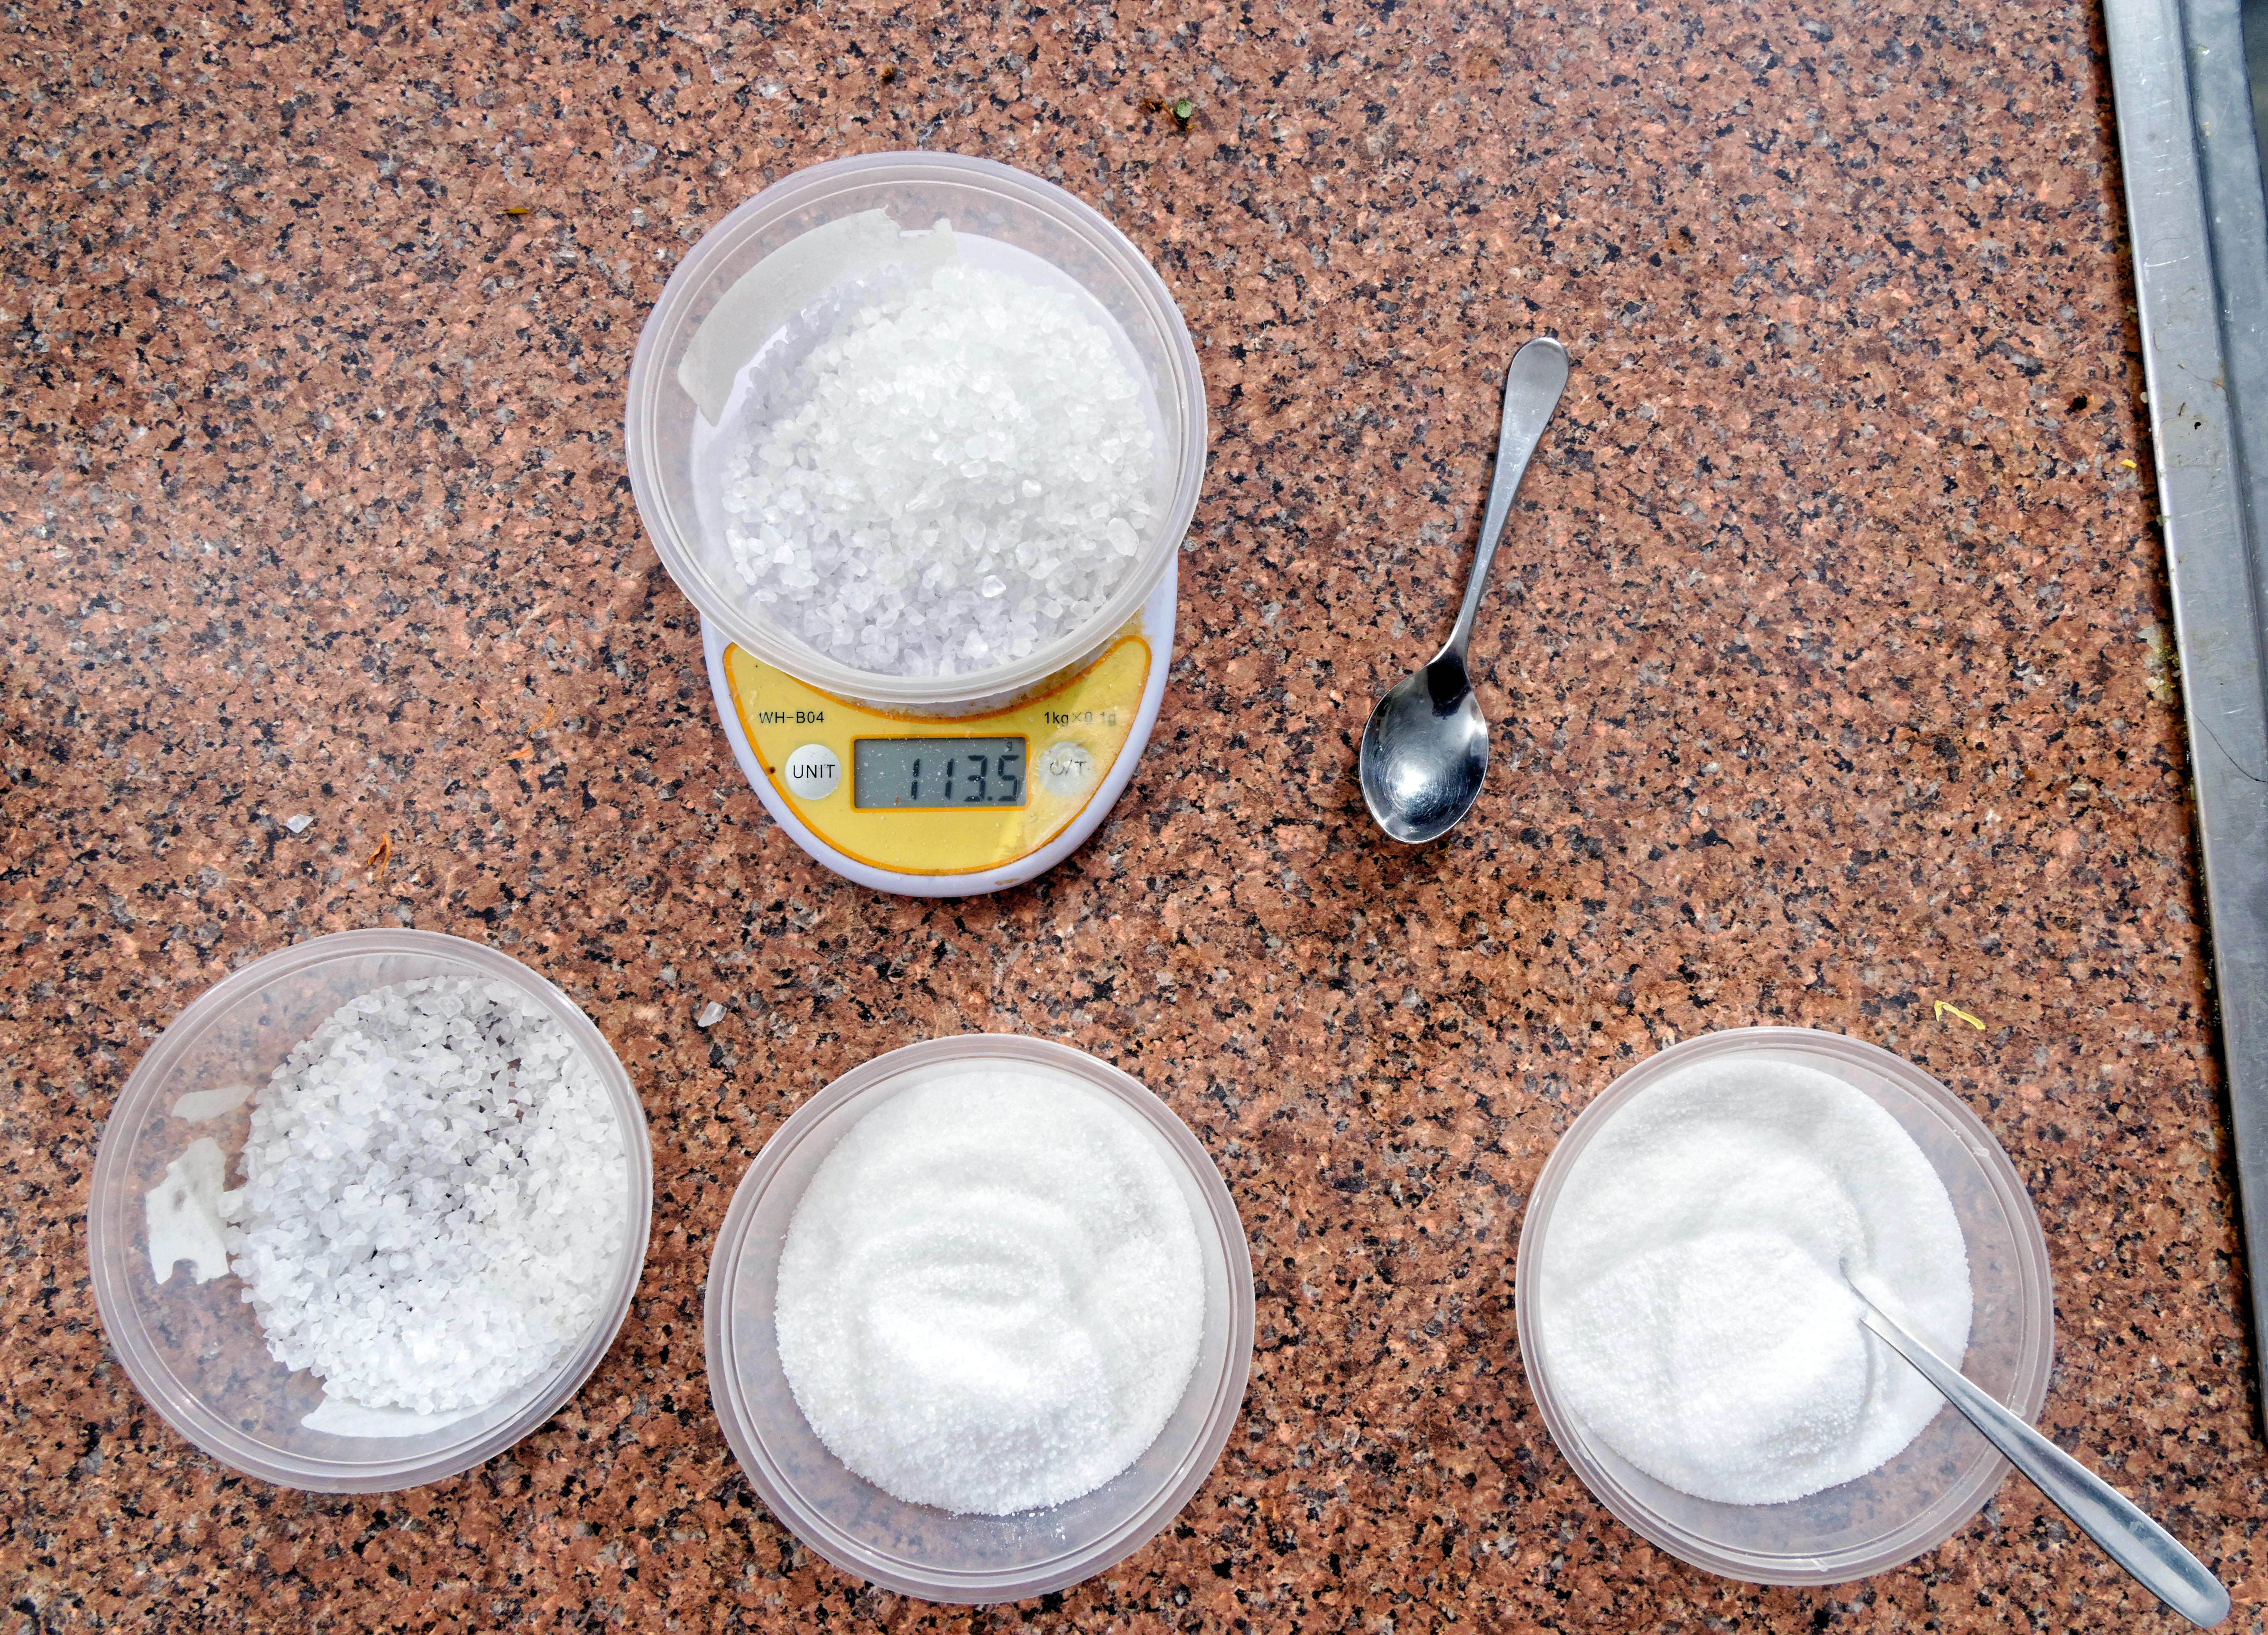 Measuring-salt-with-spoons-3.jpeg